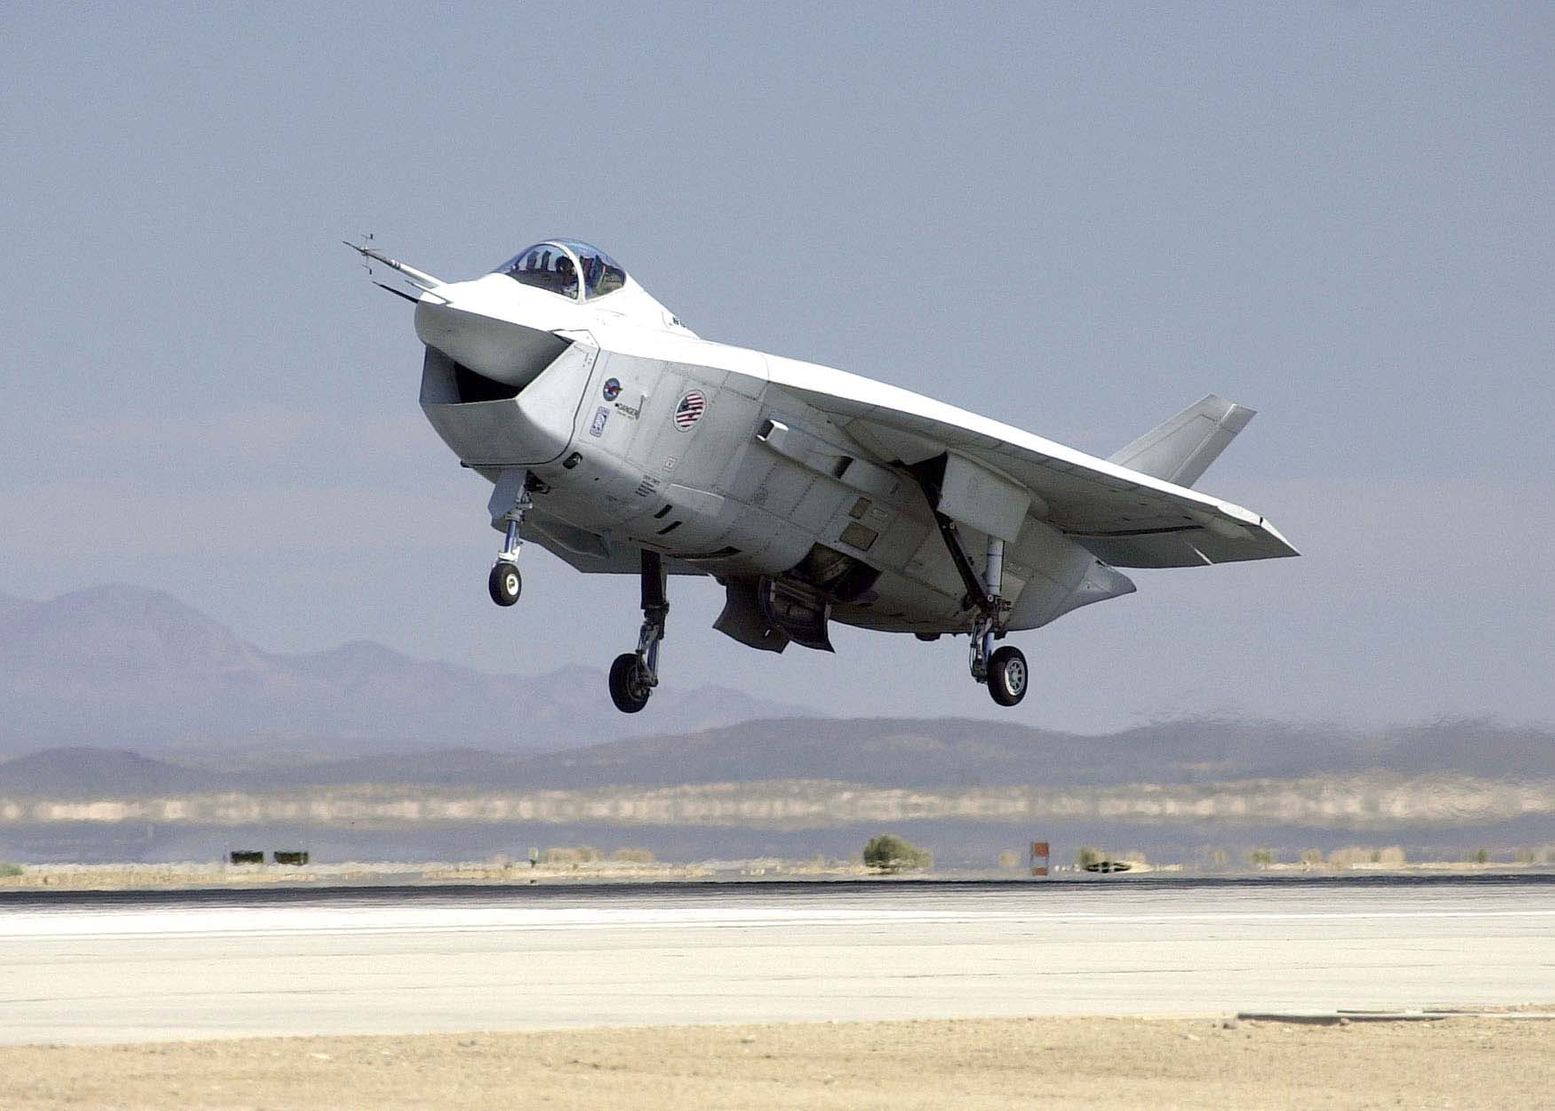 Meet The 2 Stealth Fighters That Almost Replaced the F-22 and F-35